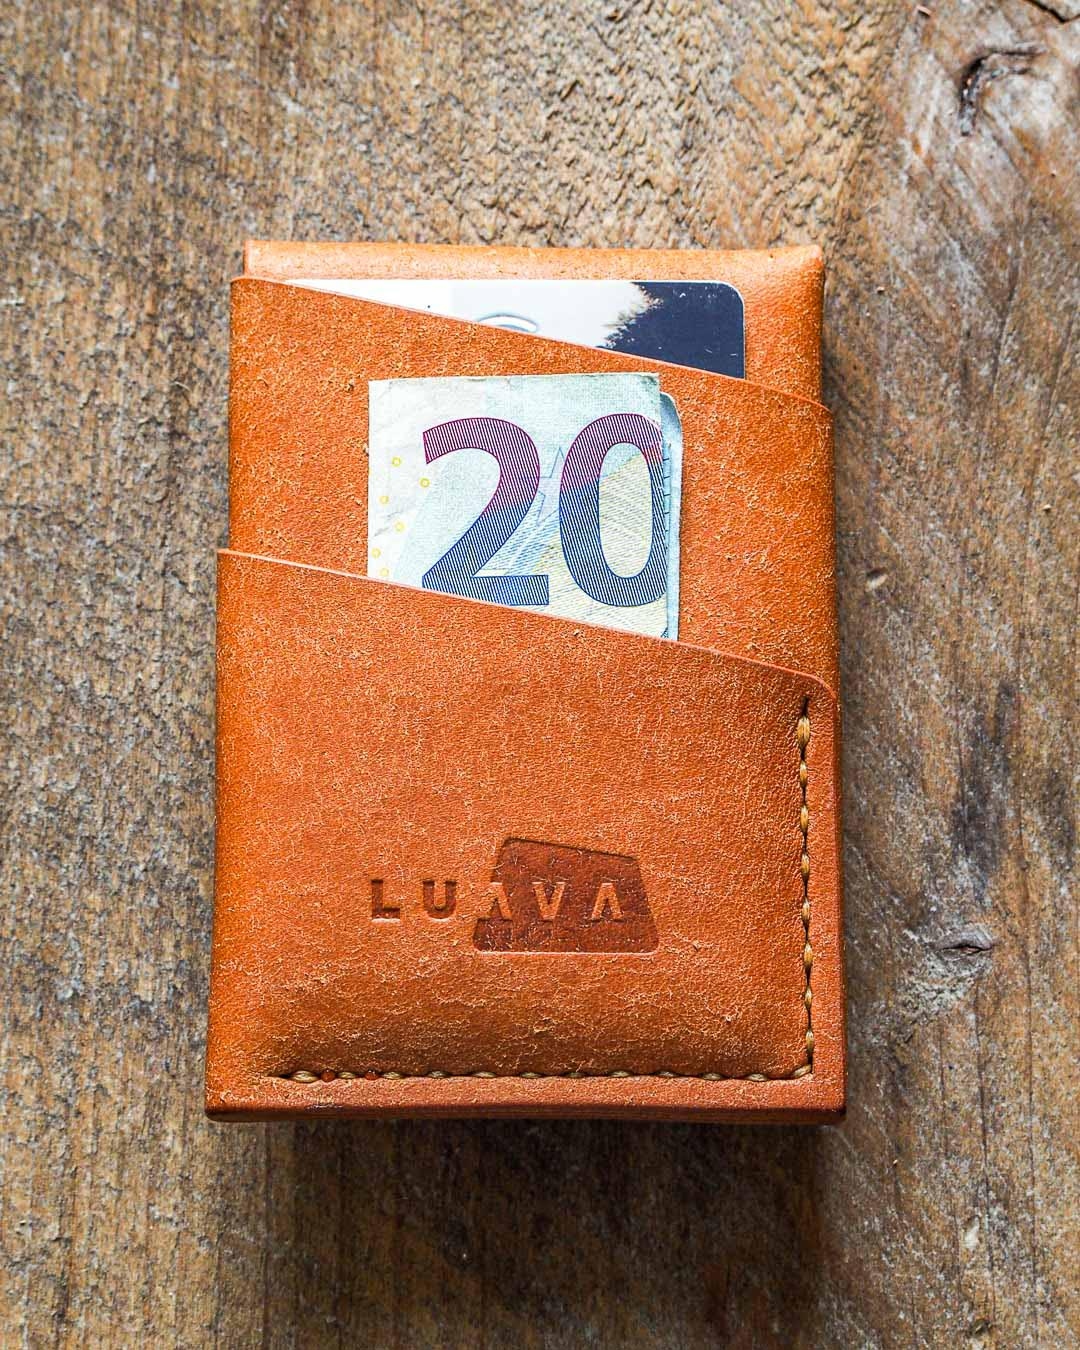 Luava handmade leather wallet handcrafted card holder cardholder made in finland overfold badalassi carlo pueblo cognac back in use